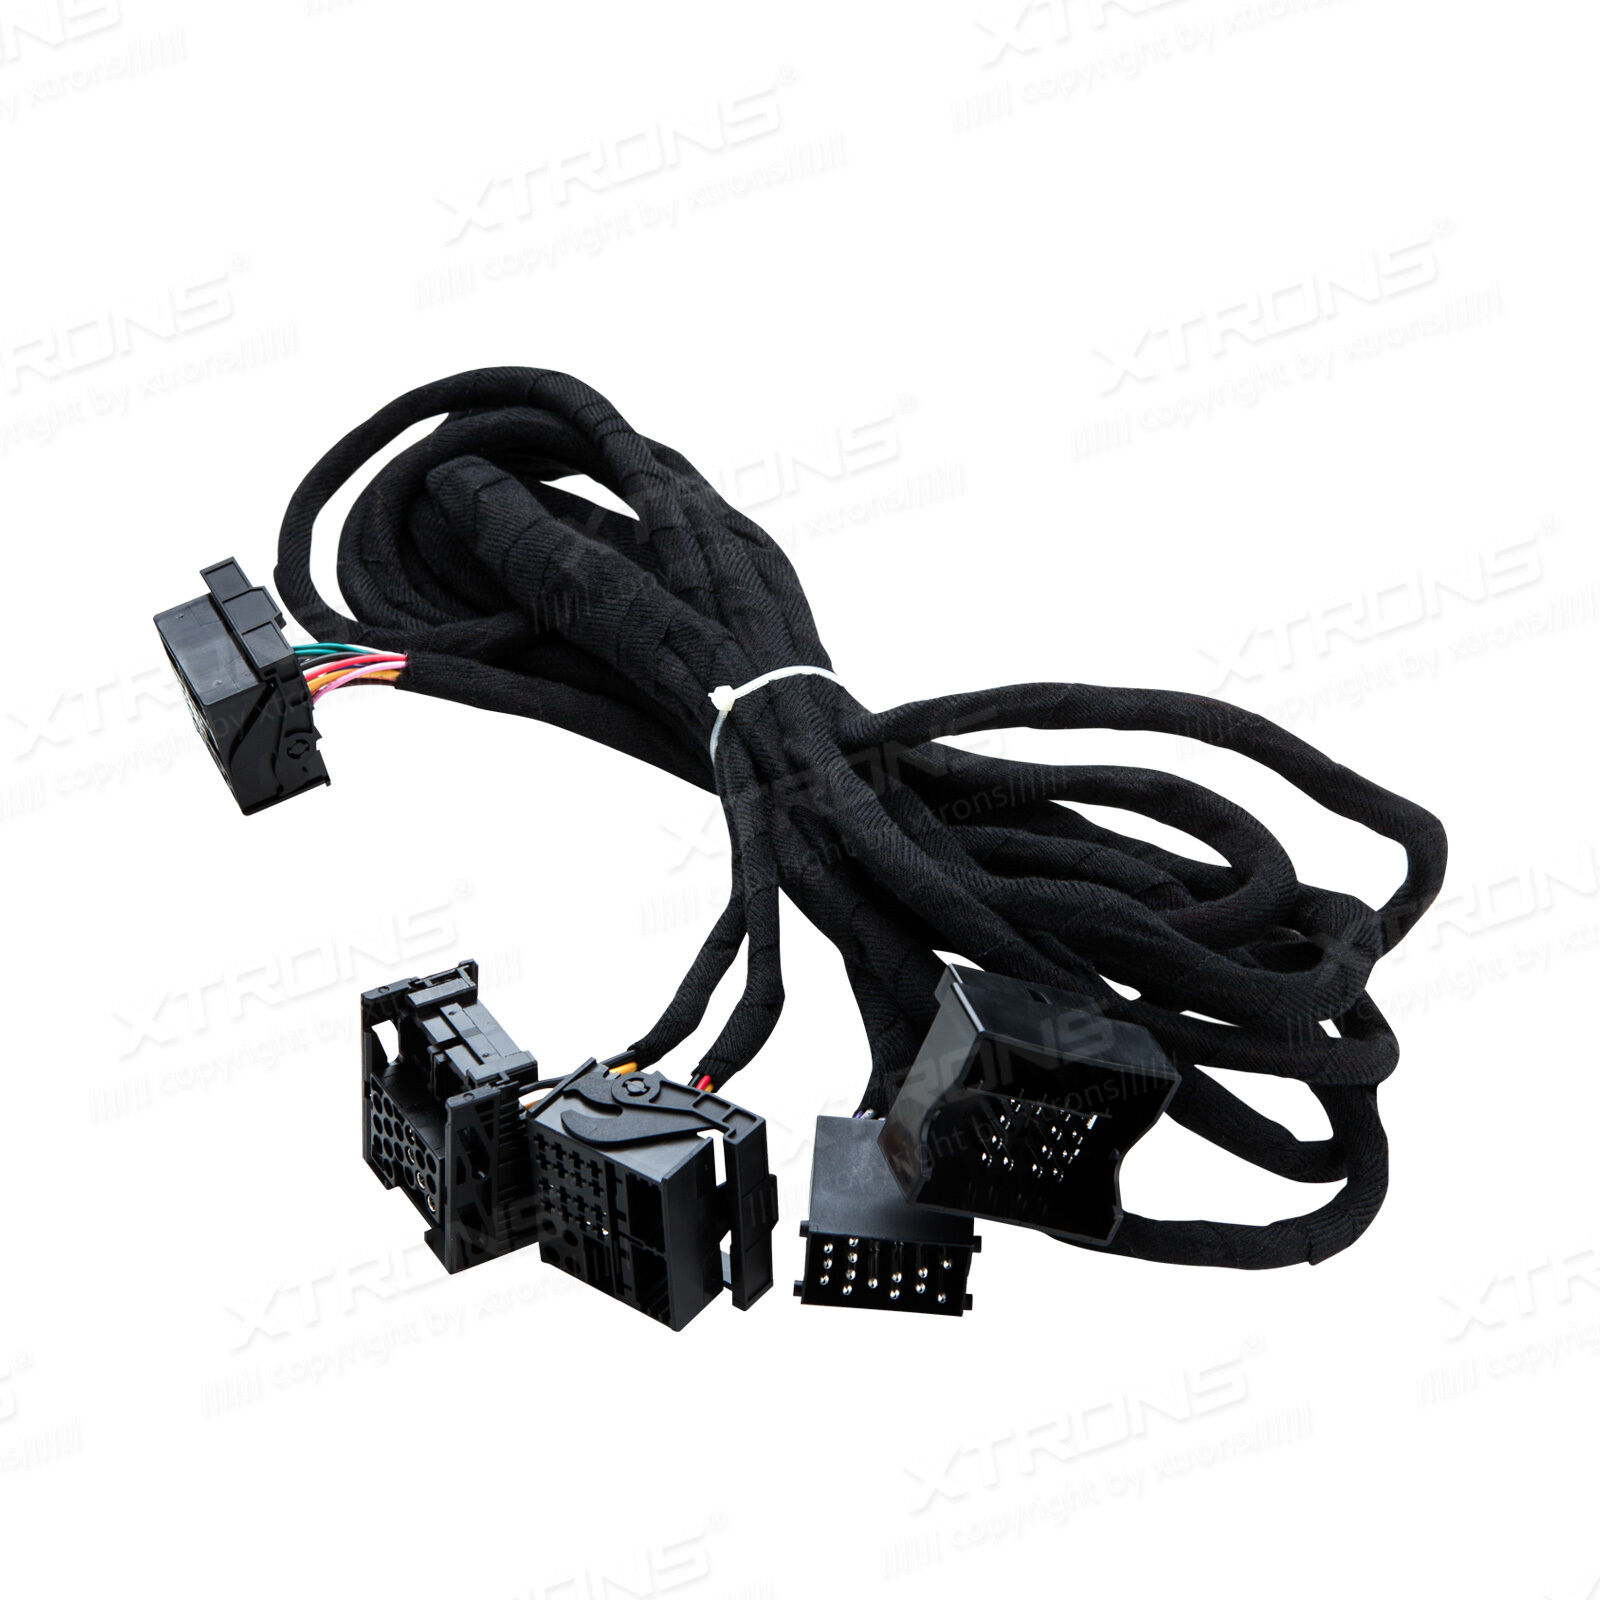 s l1600 car audio & video wire harnesses for bmw mini ebay Wiring Harness Diagram at bayanpartner.co